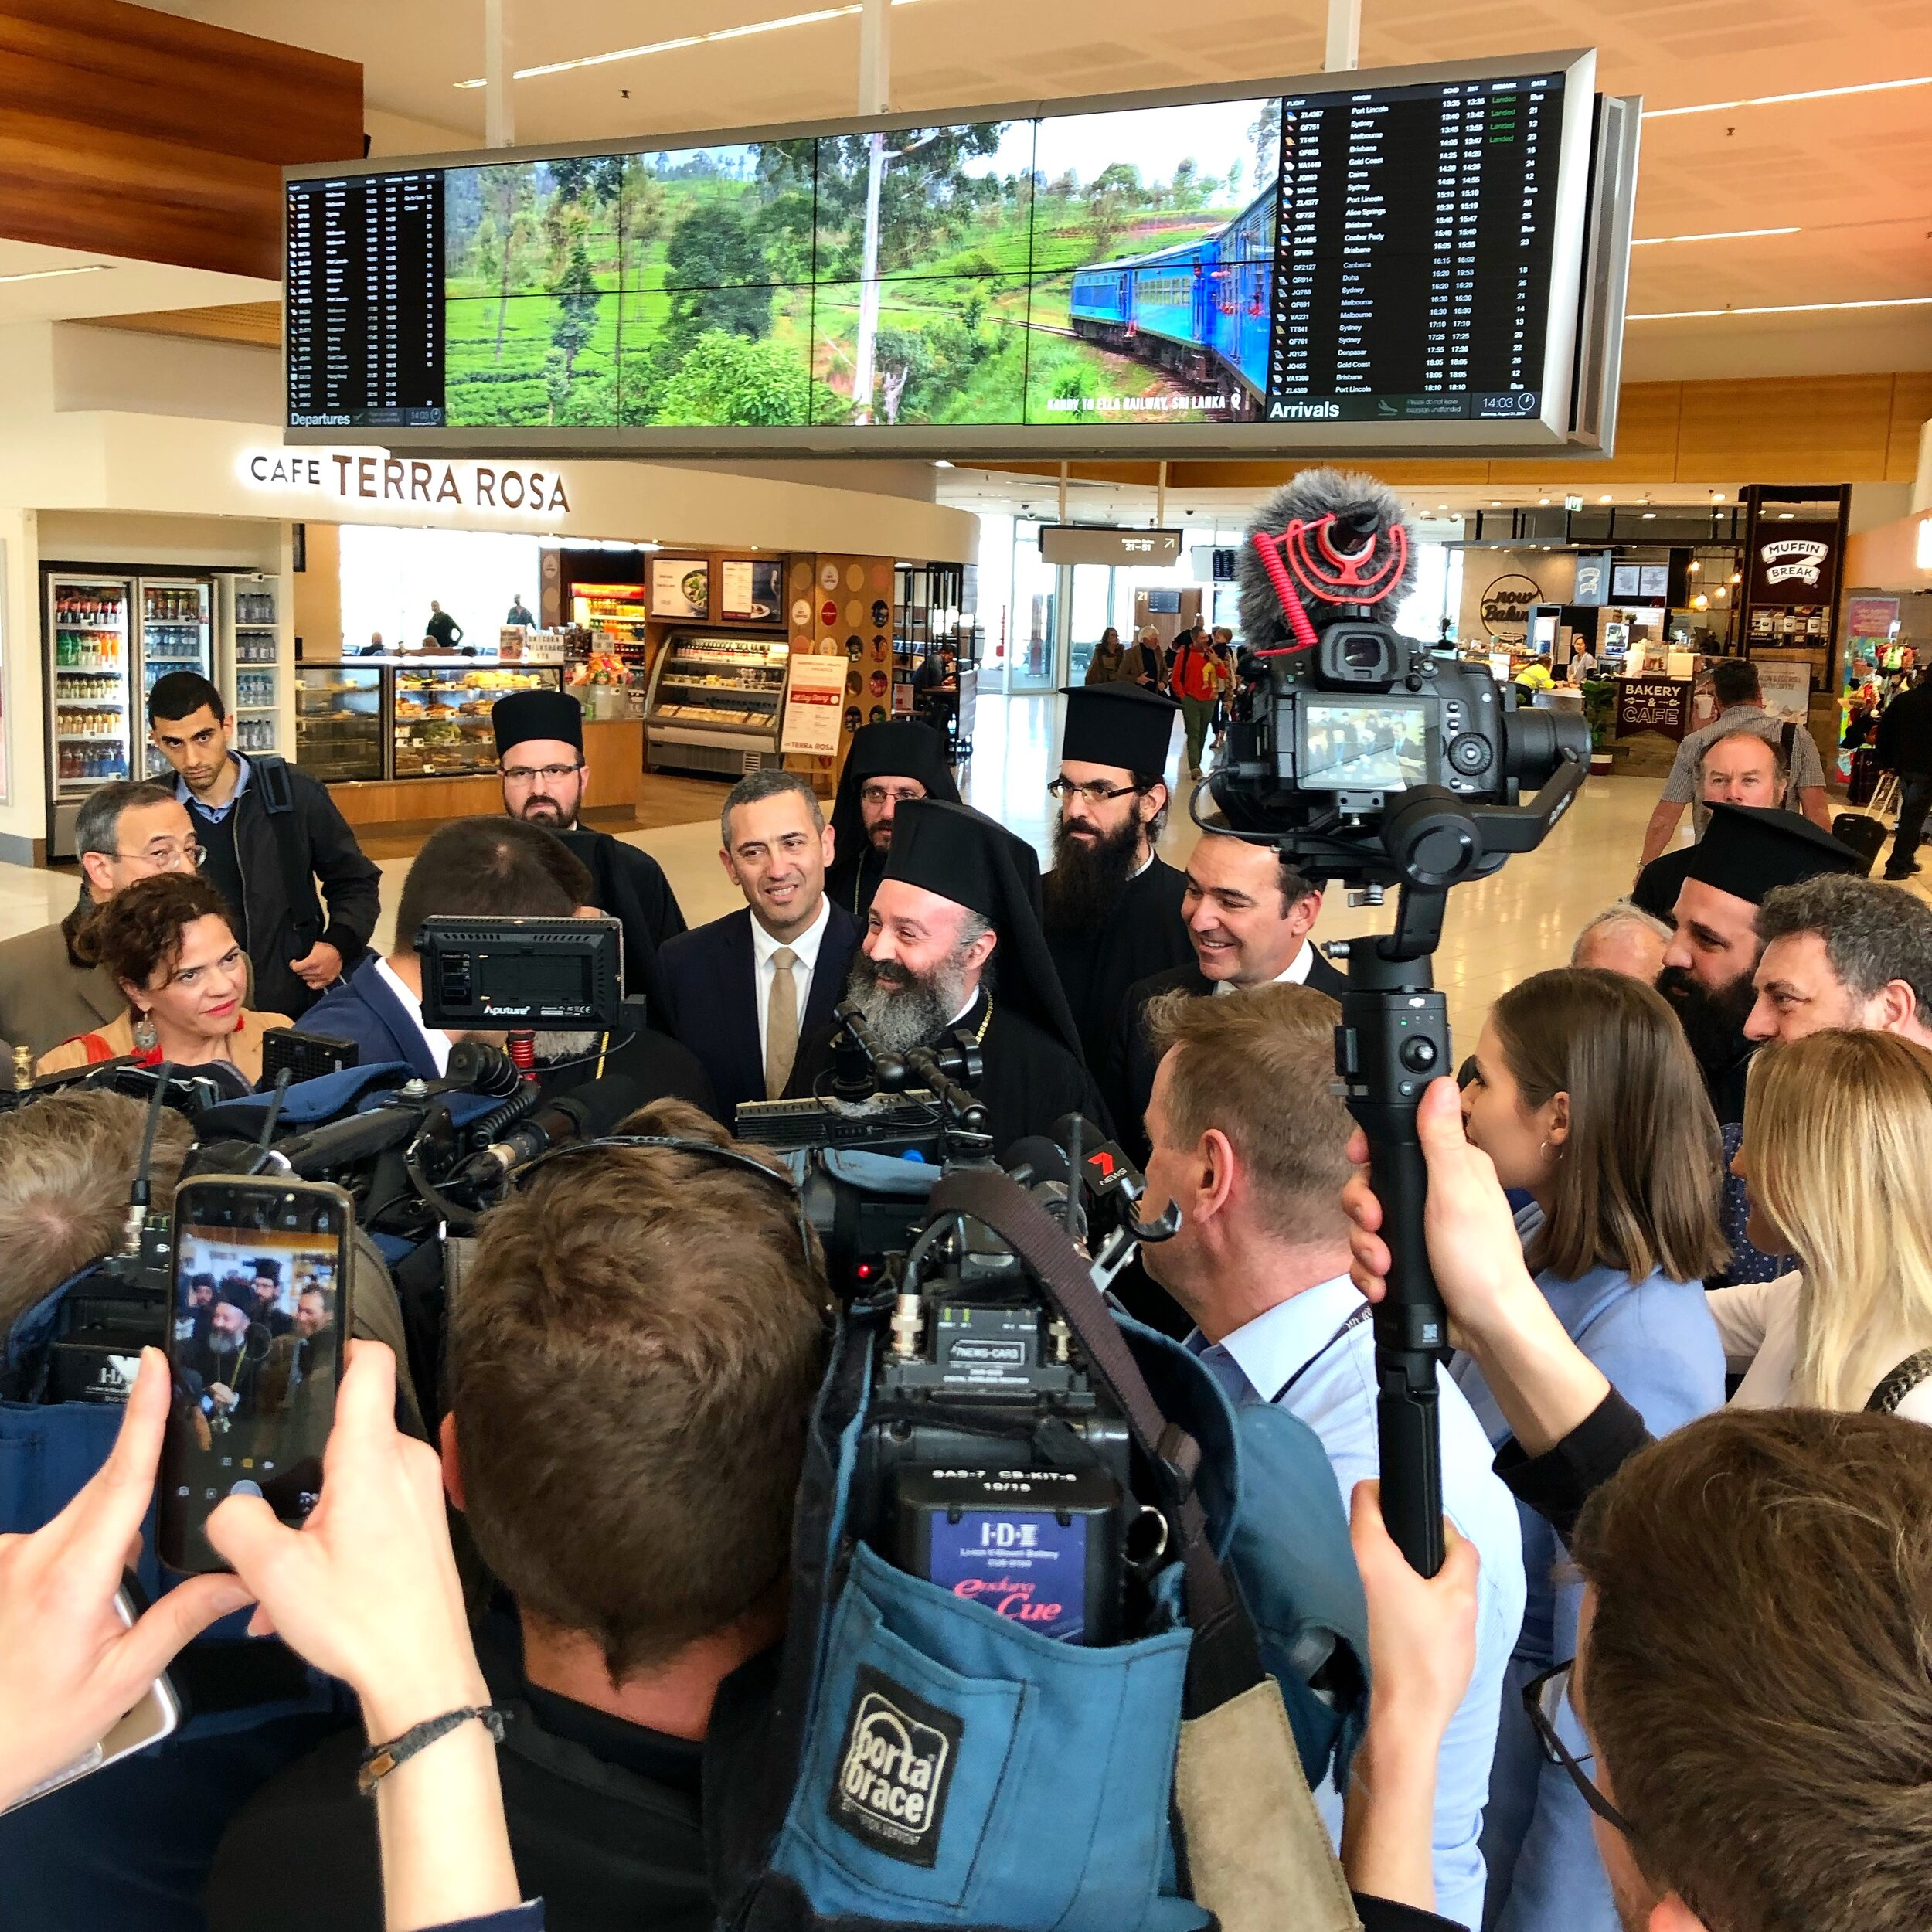 The arrival of His Eminence, Archbishop Makarios at Adelaide Airport for his first official visit to Adelaide